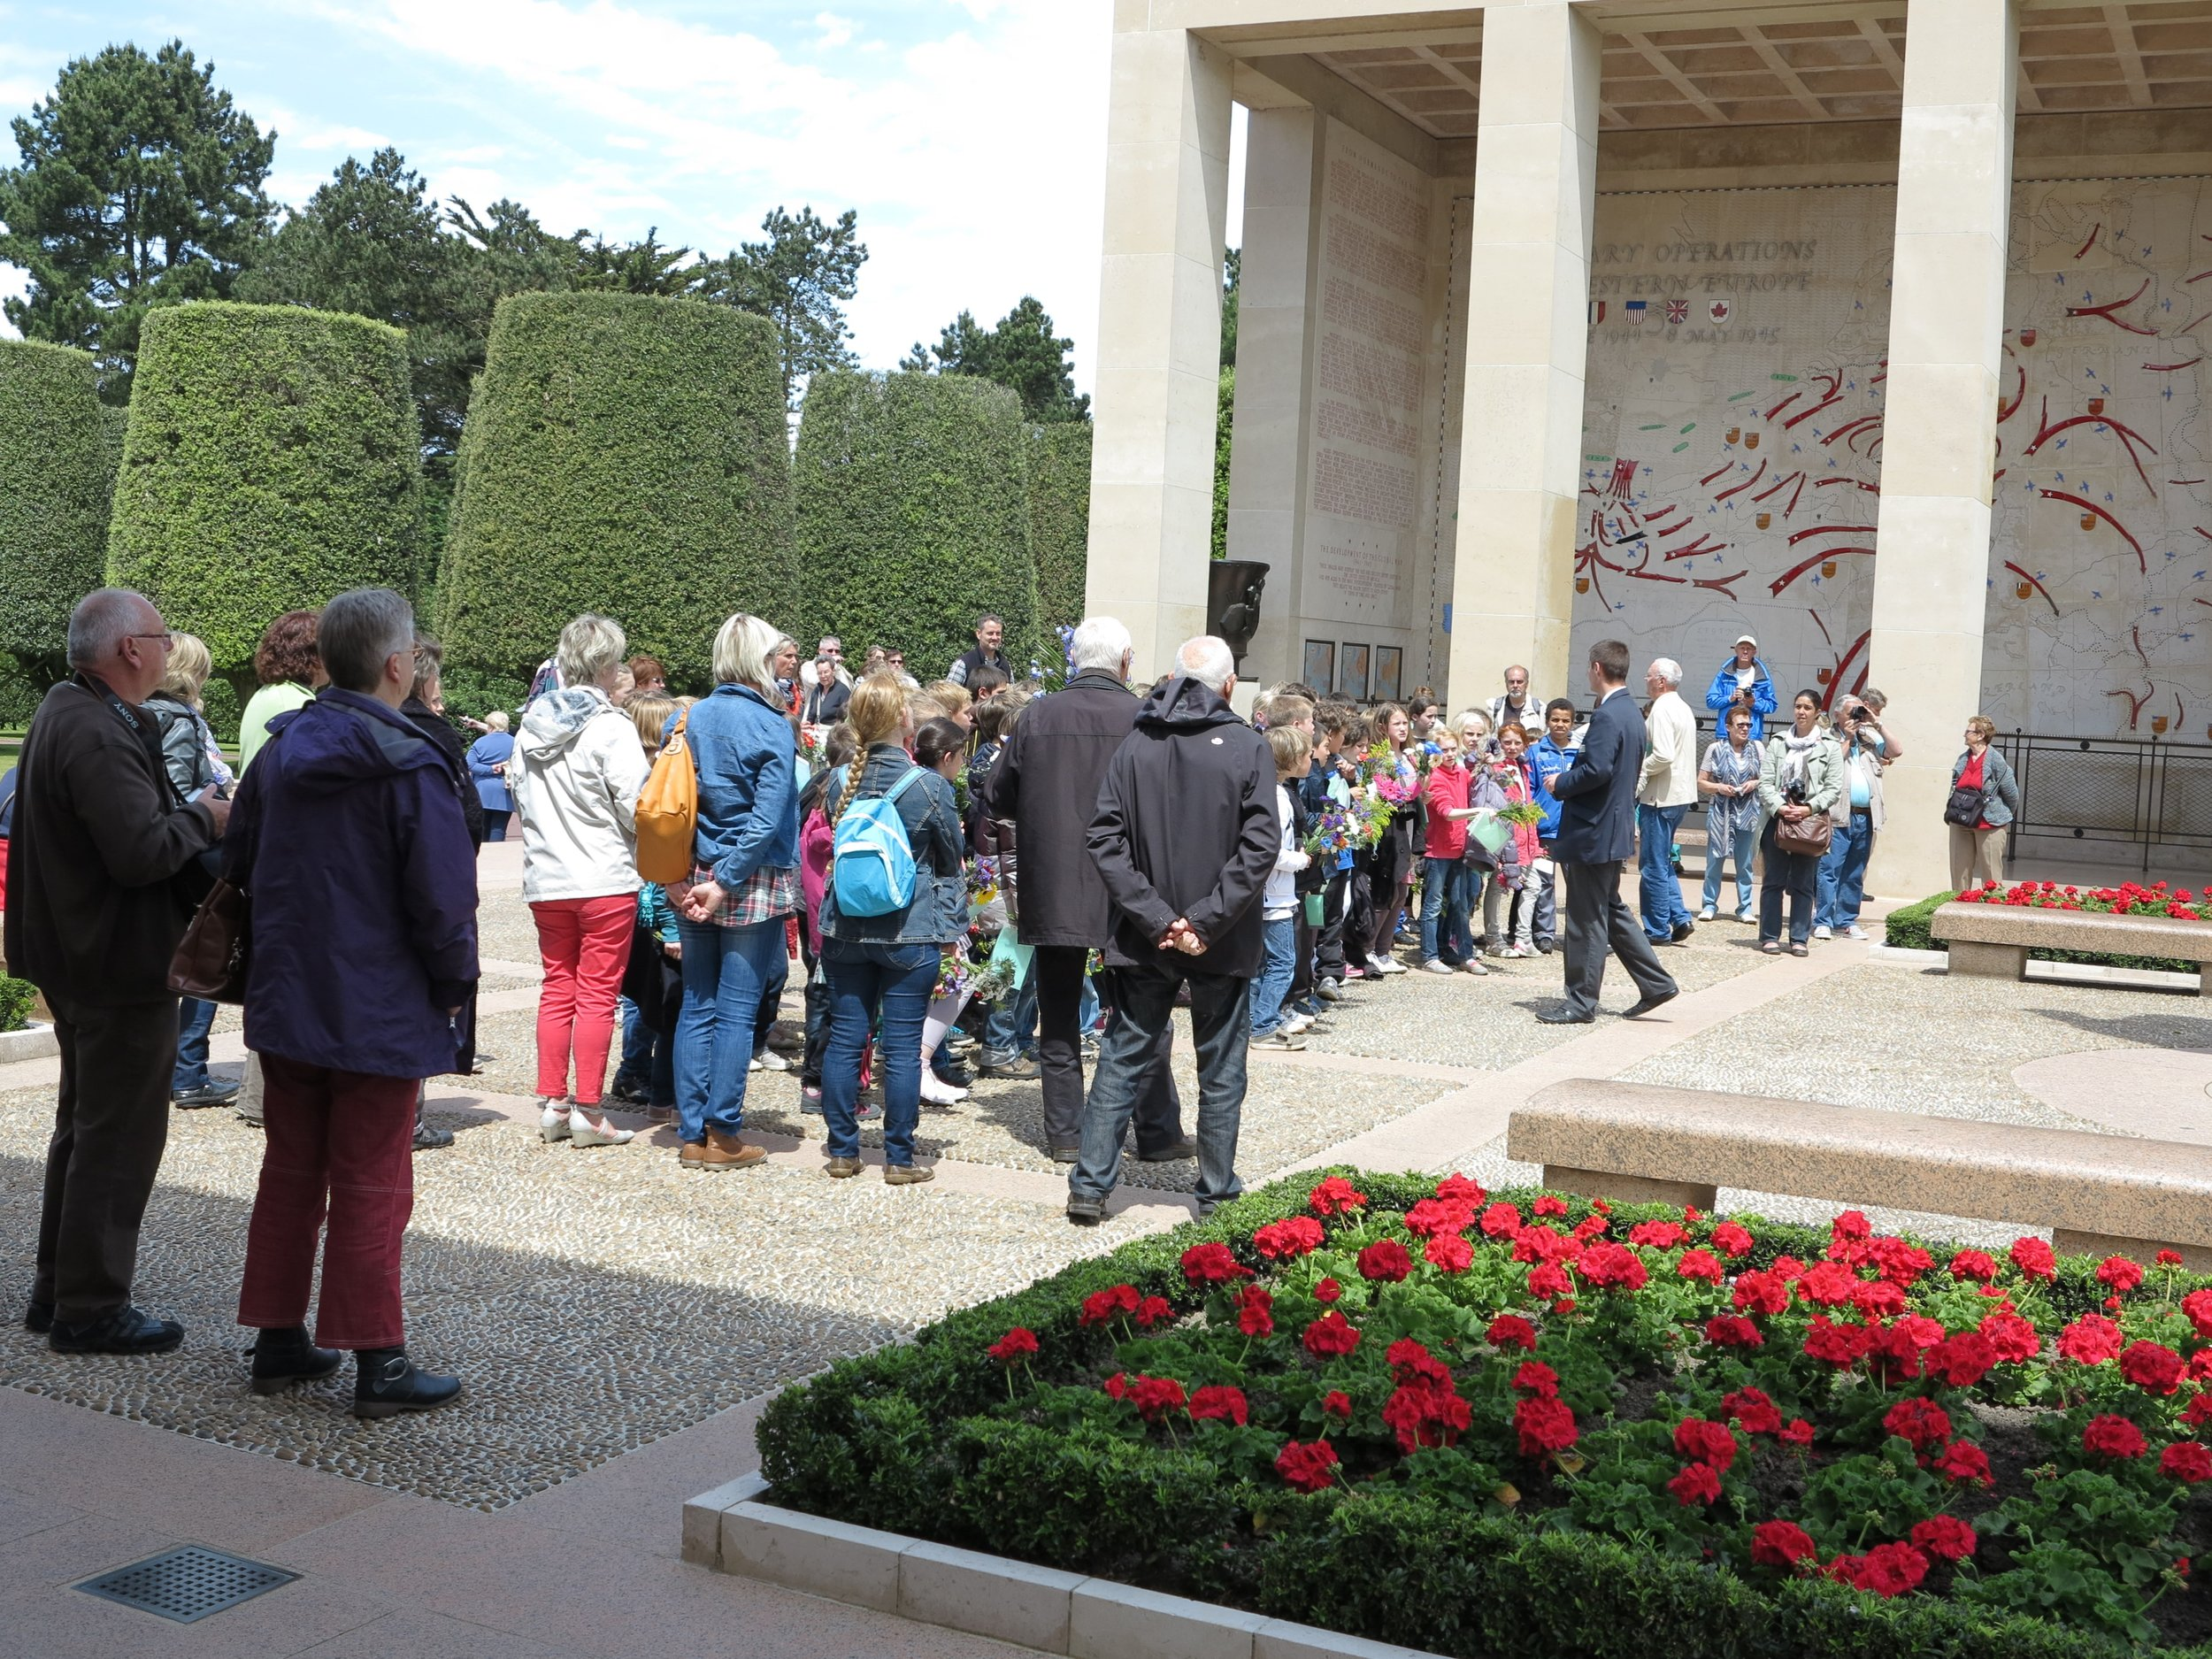 At the Normandy American Cemetery & Memorial, in Colleville-sur-Mer, France. Bus loads of French school children arrive at the memorial, with flowers and a paper with a specific grave location, to honor a soldier killed in the invasion of 1944. This brings this history up close and personal for these children, in an area of France that remains grateful for the sacrifice made by so many to free France from Nazi Germany.